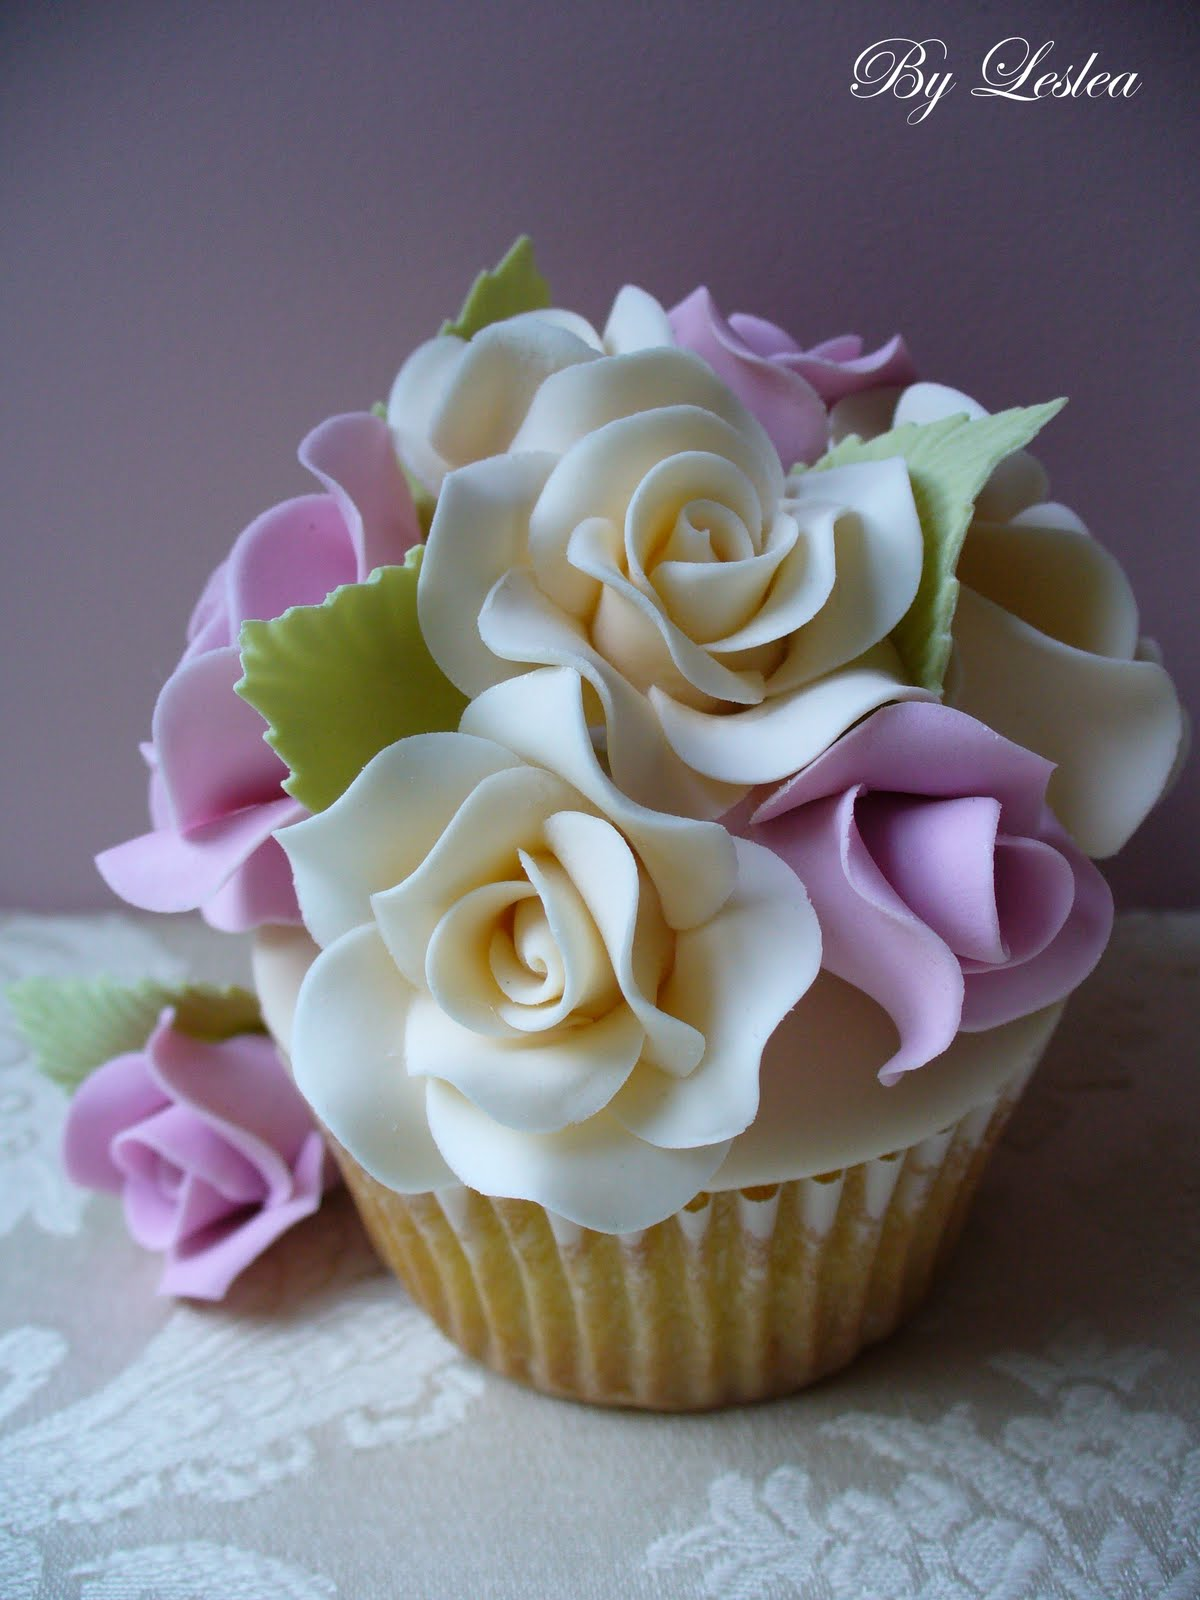 Images Of Cake With Roses : Leslea Matsis Cakes: Rose Garden Cupcake